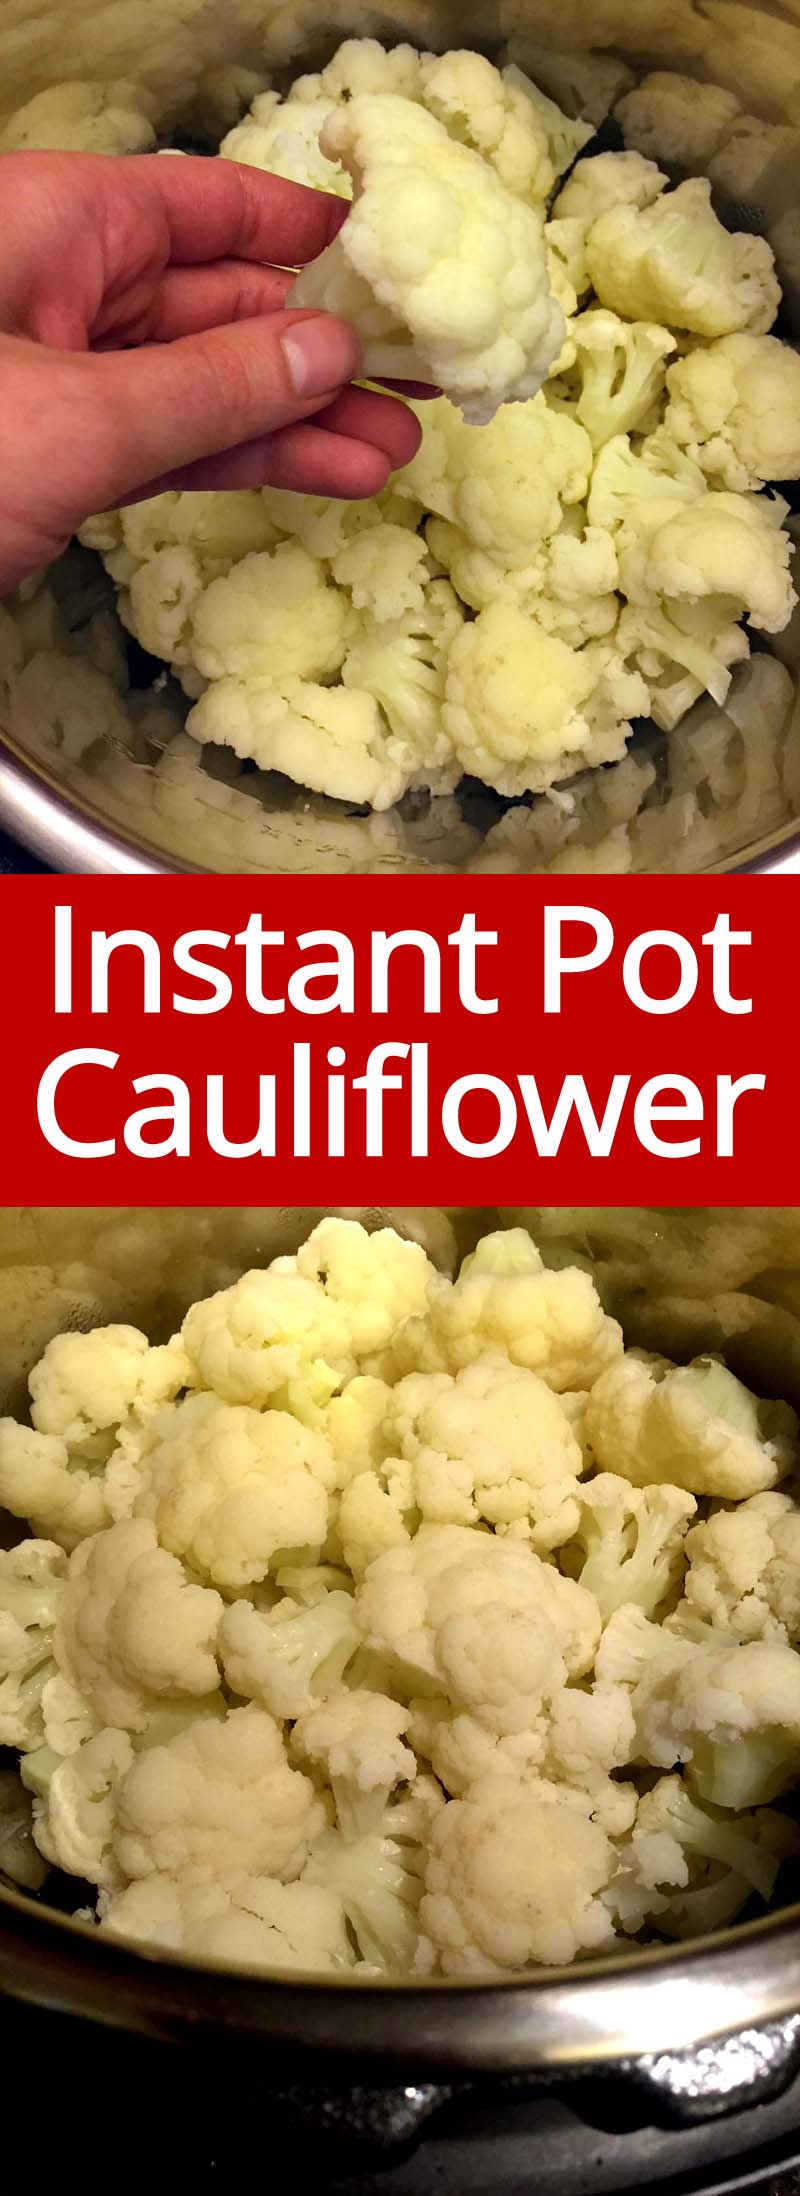 Instant Pot cauliflower is perfectly cooked, I love it! This is the only way I'll make steamed cauliflower from now on! Instant Pot rules!